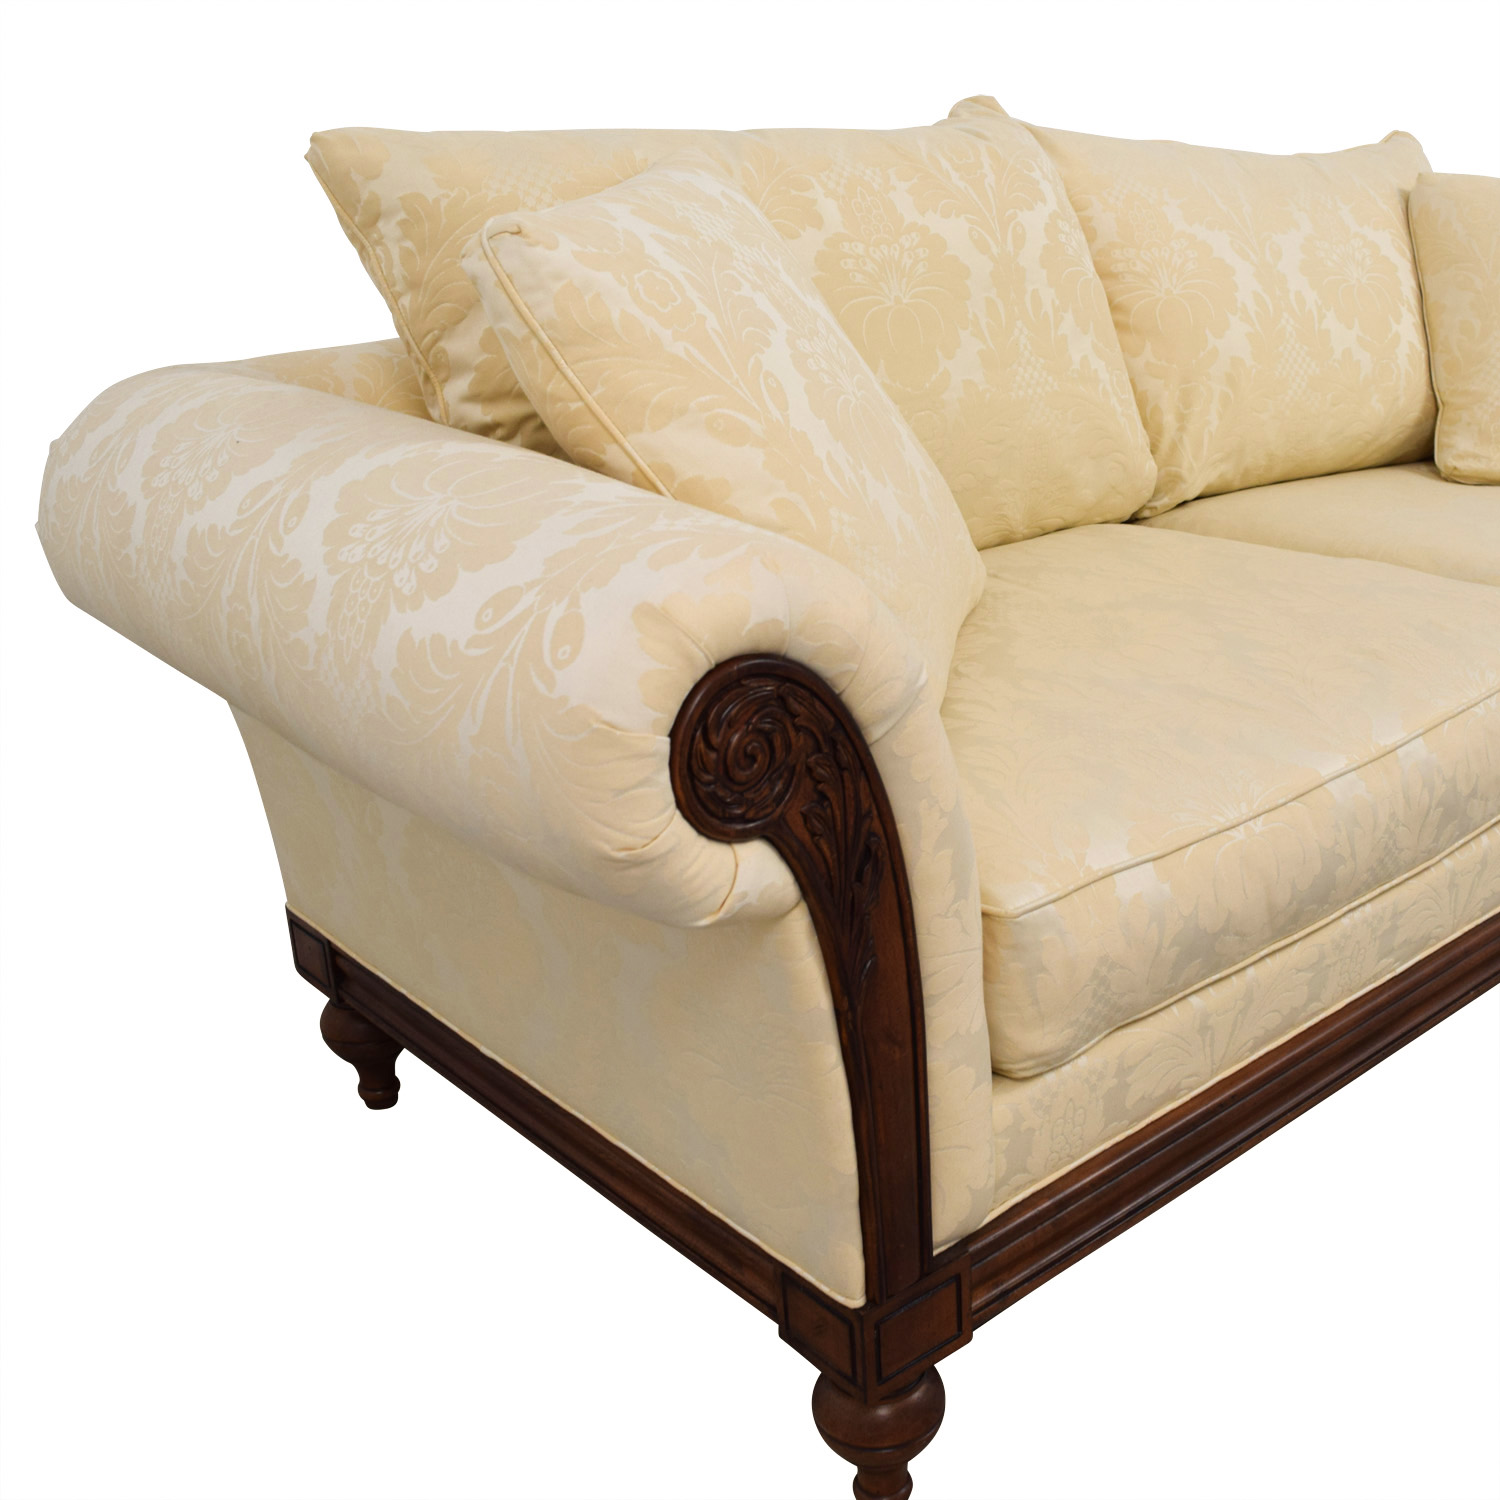 Ethan Allen Ethan Allen Ivory Jacquard Sofa with Wood Frame